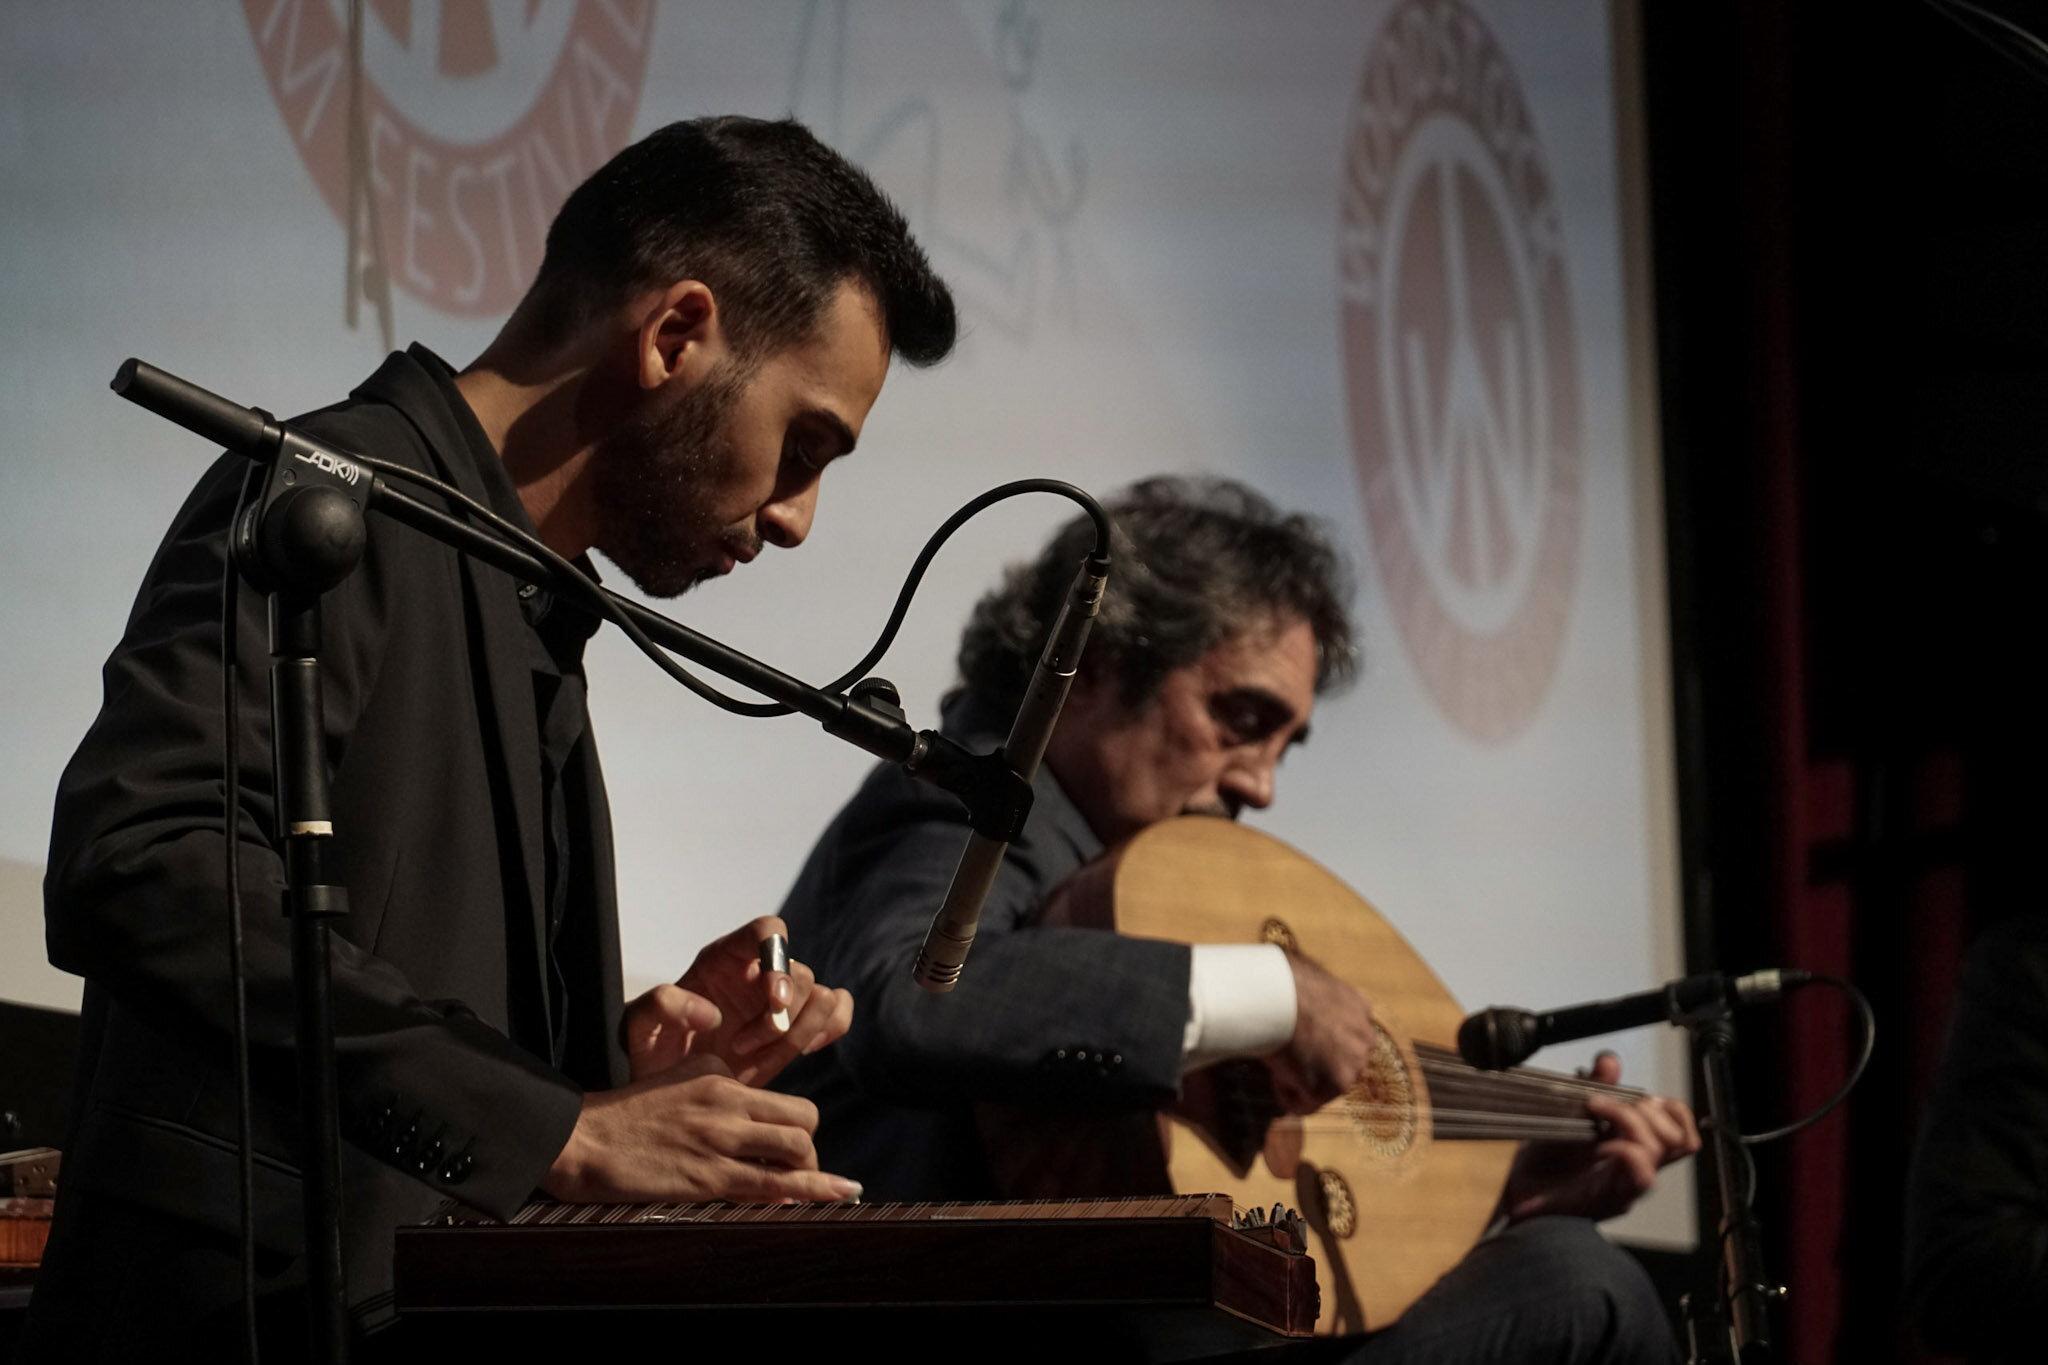 Firas Zreik (left) and Simon Shaheen (right) performing onstage at The Woodstock Playhouse